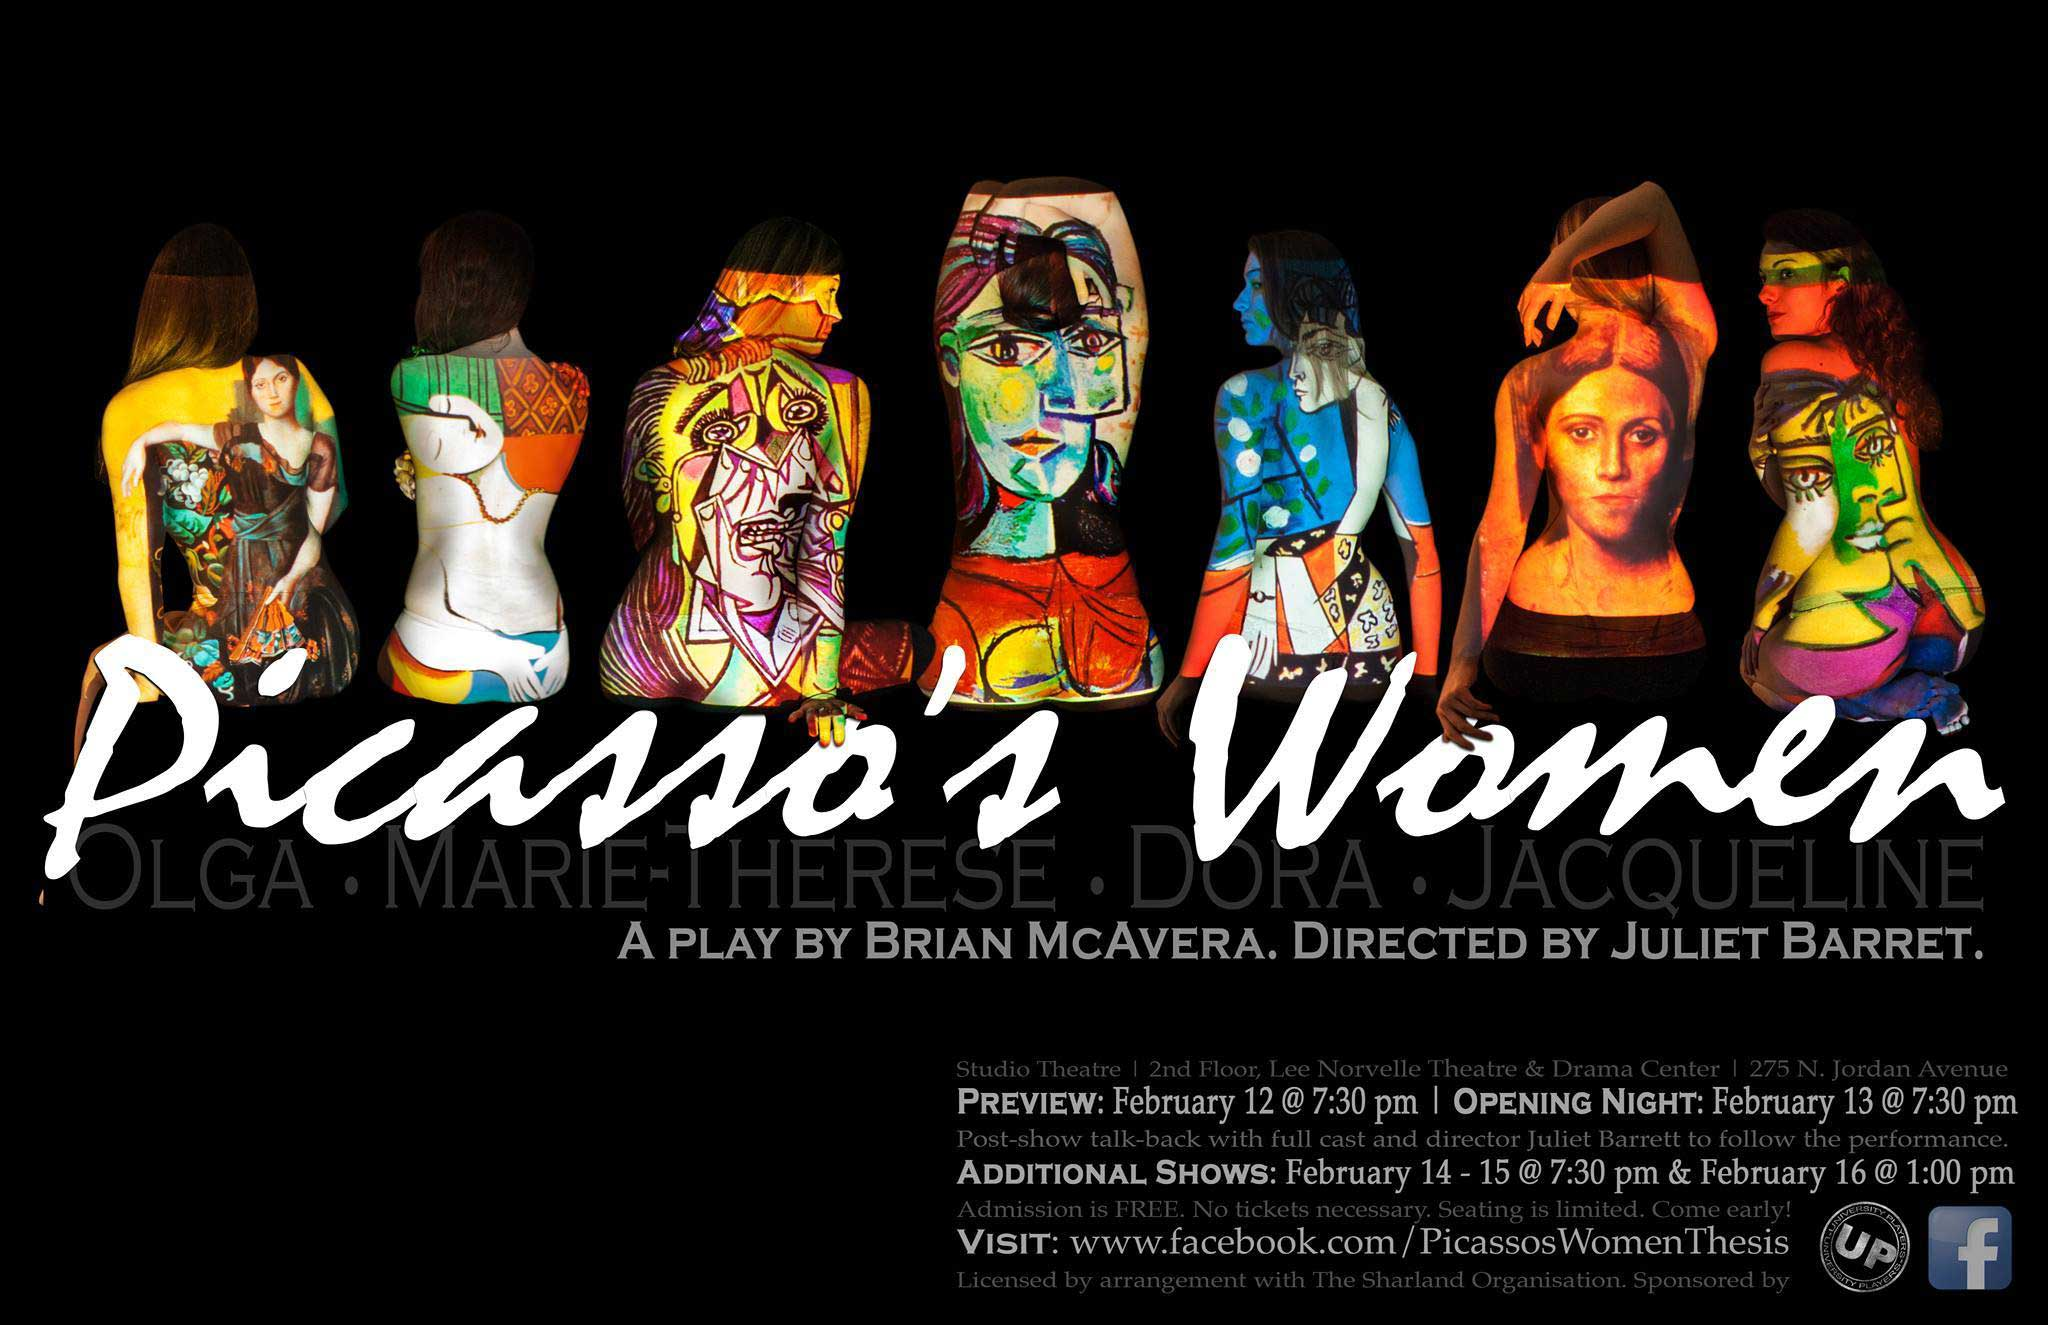 A poster image for Picasso's Women, an honor's project directed by Juliet Barrett.